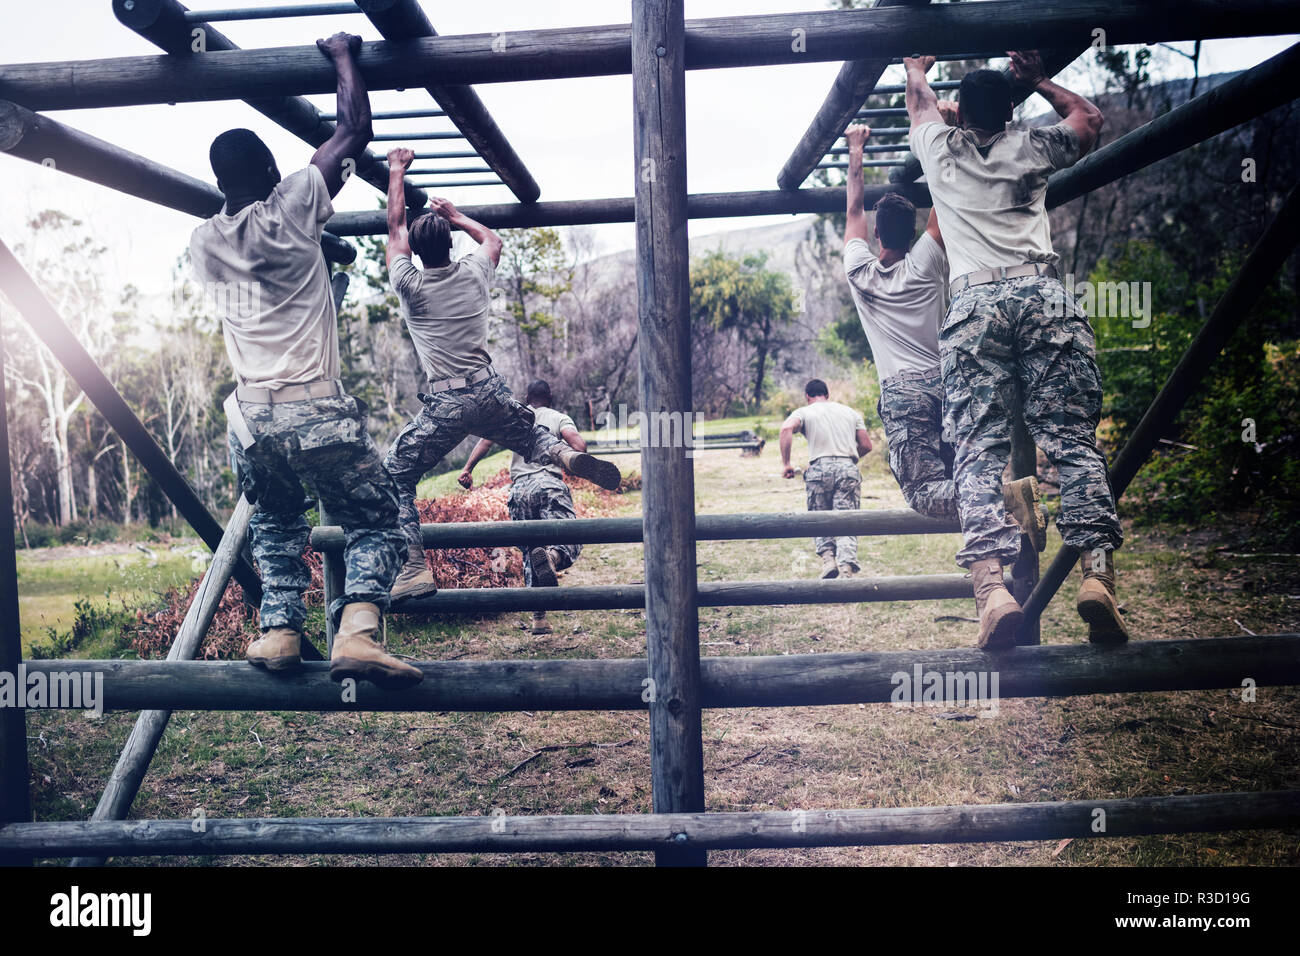 Soldiers climbing monkey bars - Stock Image